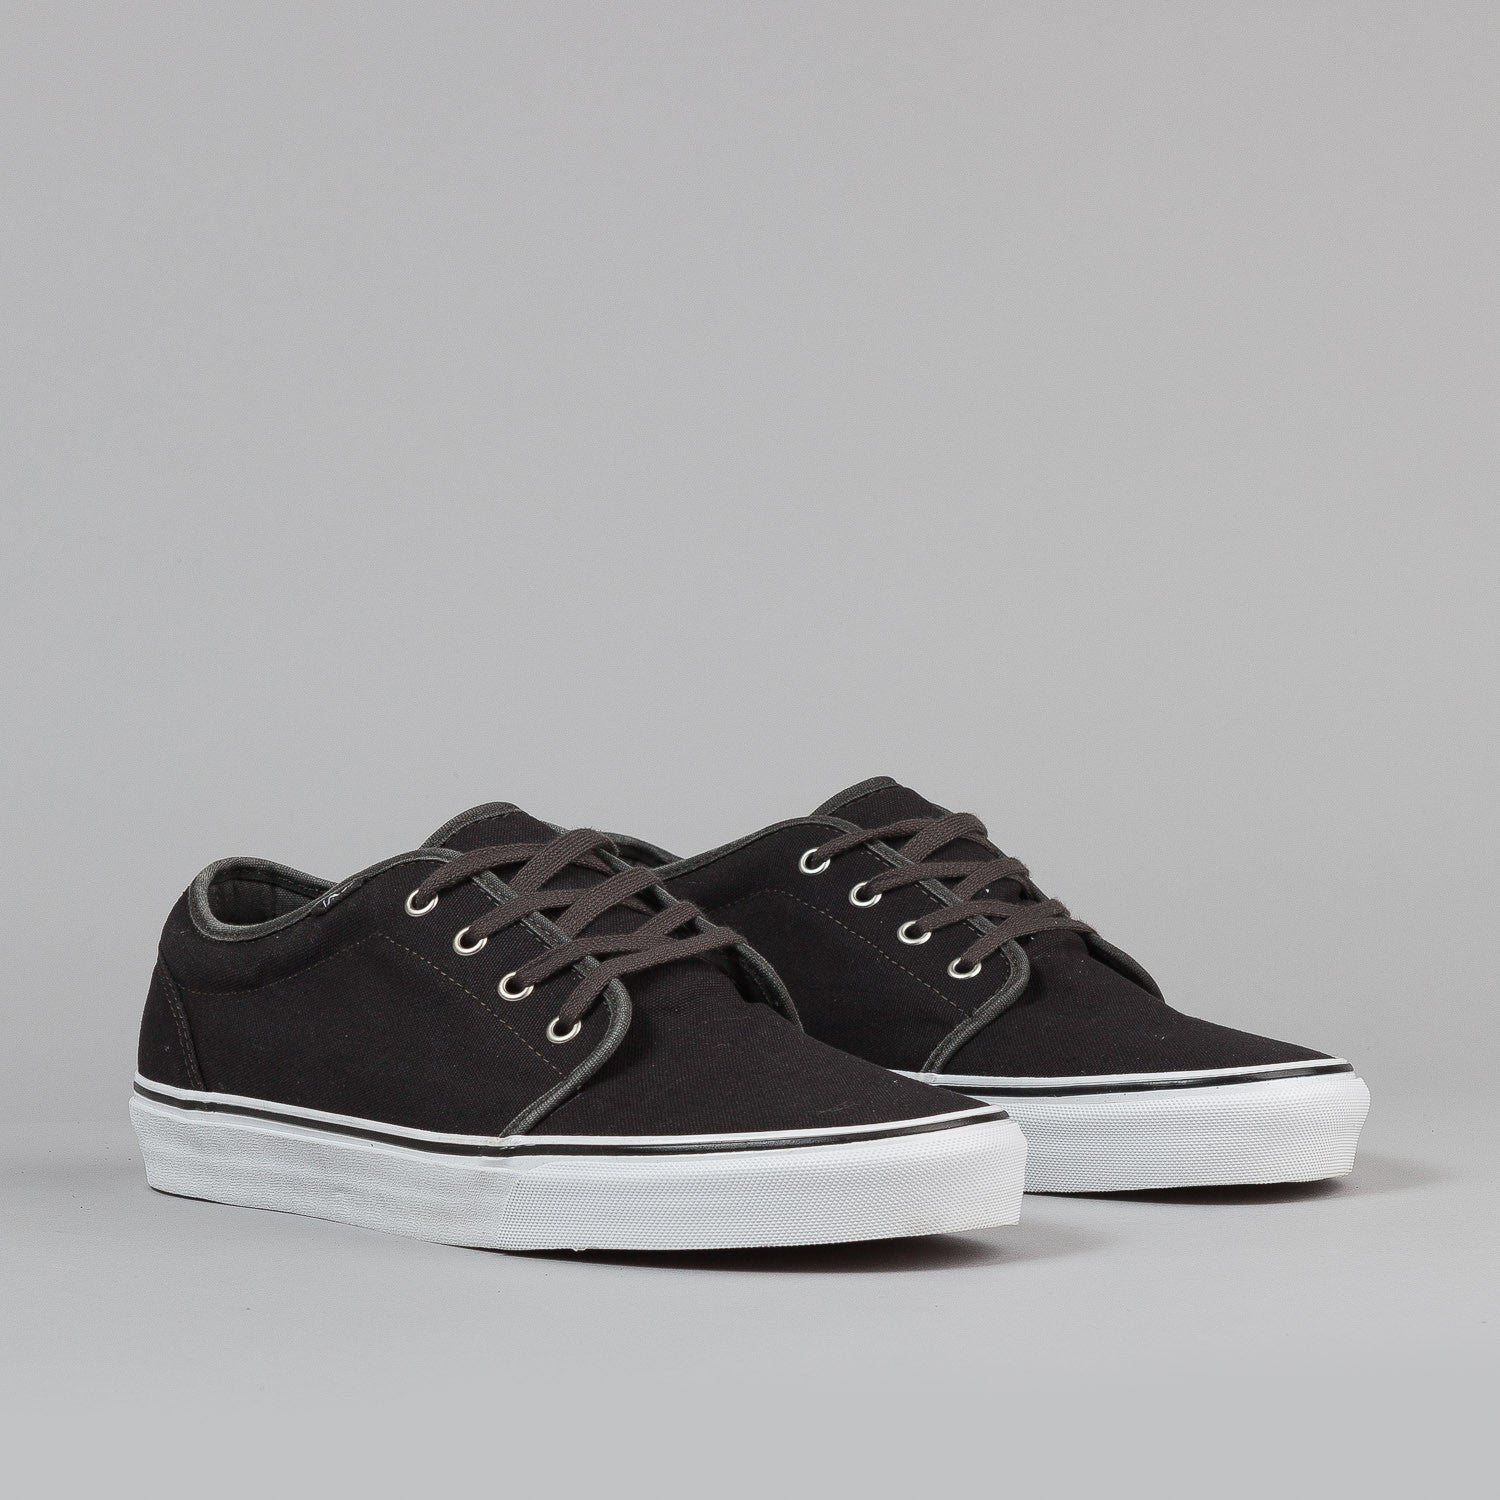 Vans 106 Vulc Shoes - (Garment Dye) Black